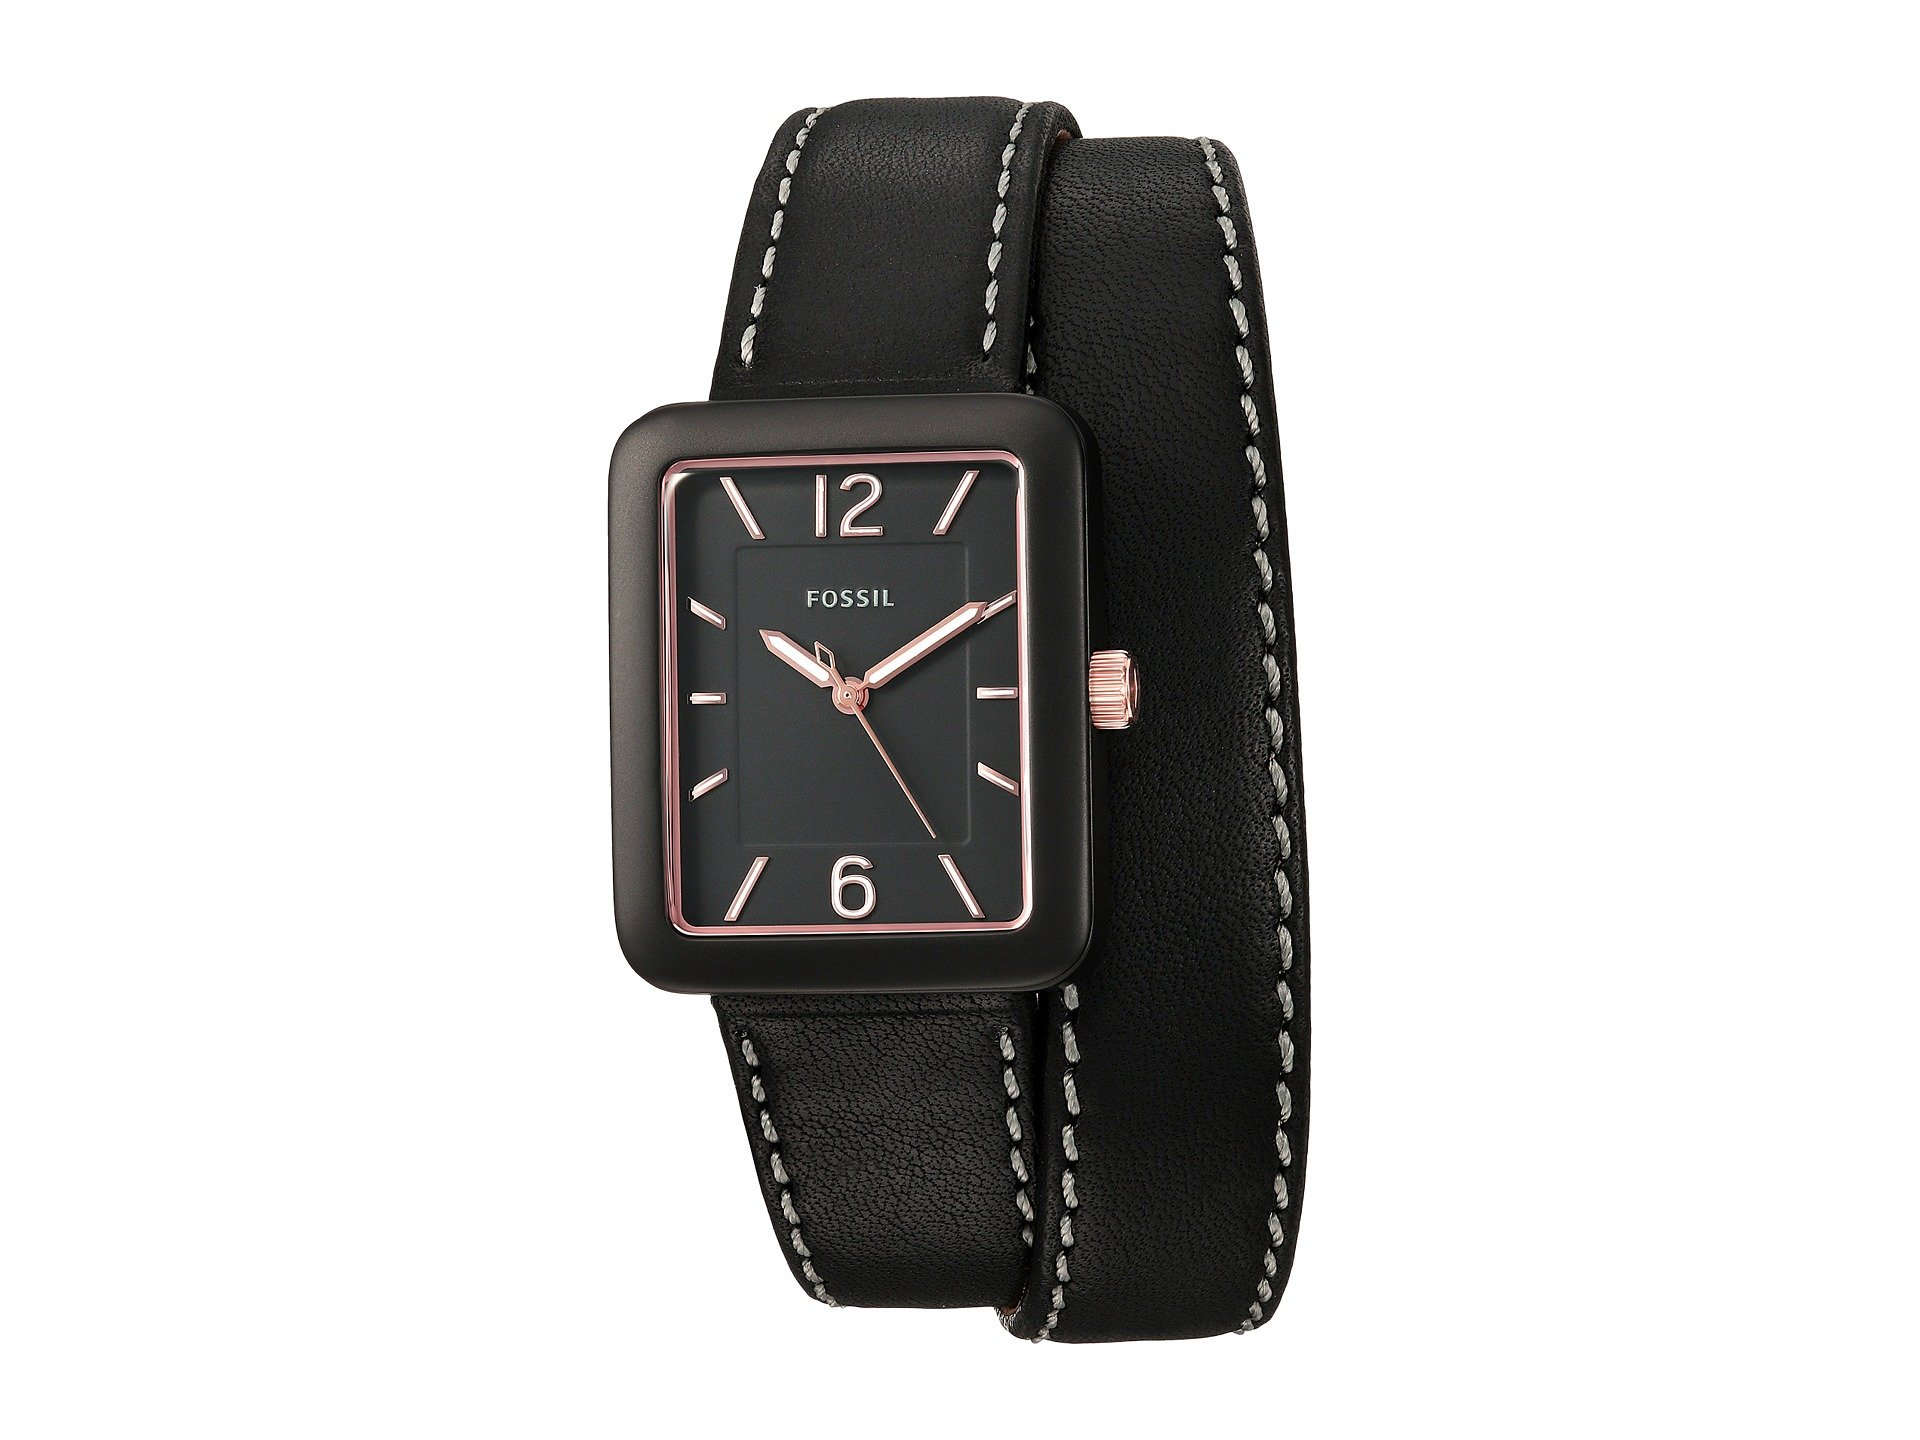 Reloj para Mujer Fossil Atwater - ES4193  + Fossil en VeoyCompro.net